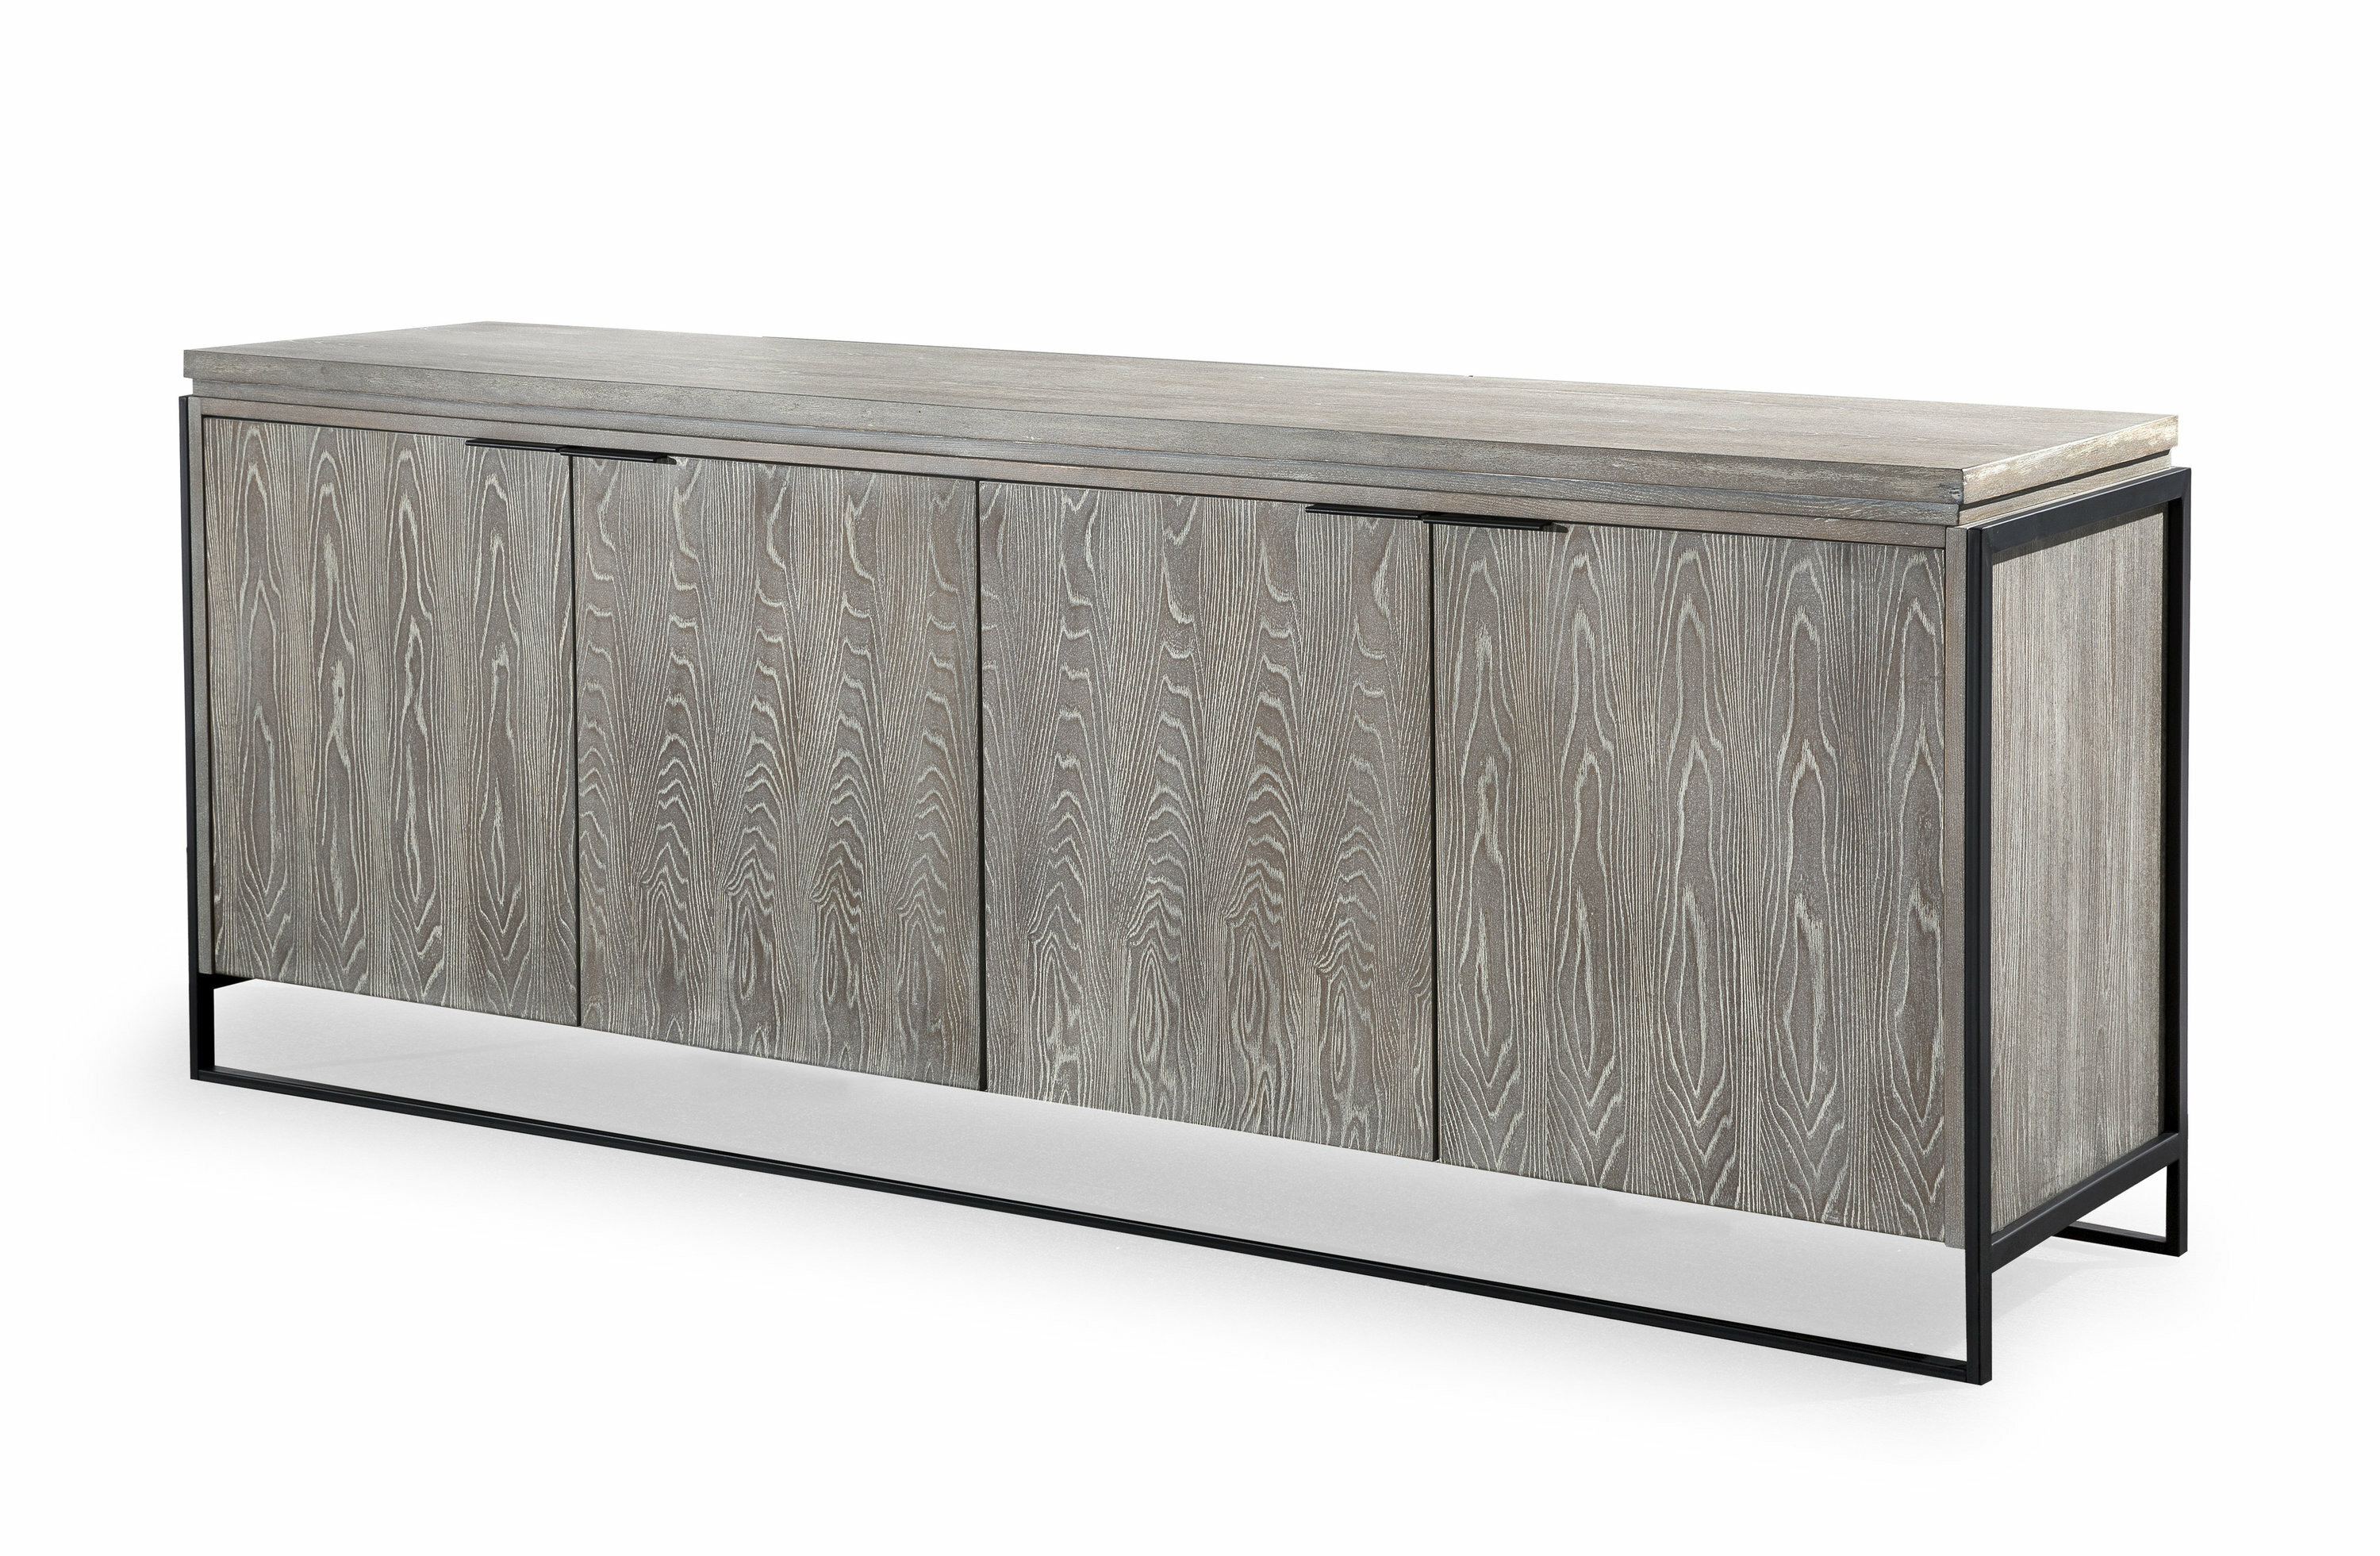 Zybert Sideboard Pertaining To Steinhatchee Reclaimed Pine 4 Door Sideboards (View 30 of 30)